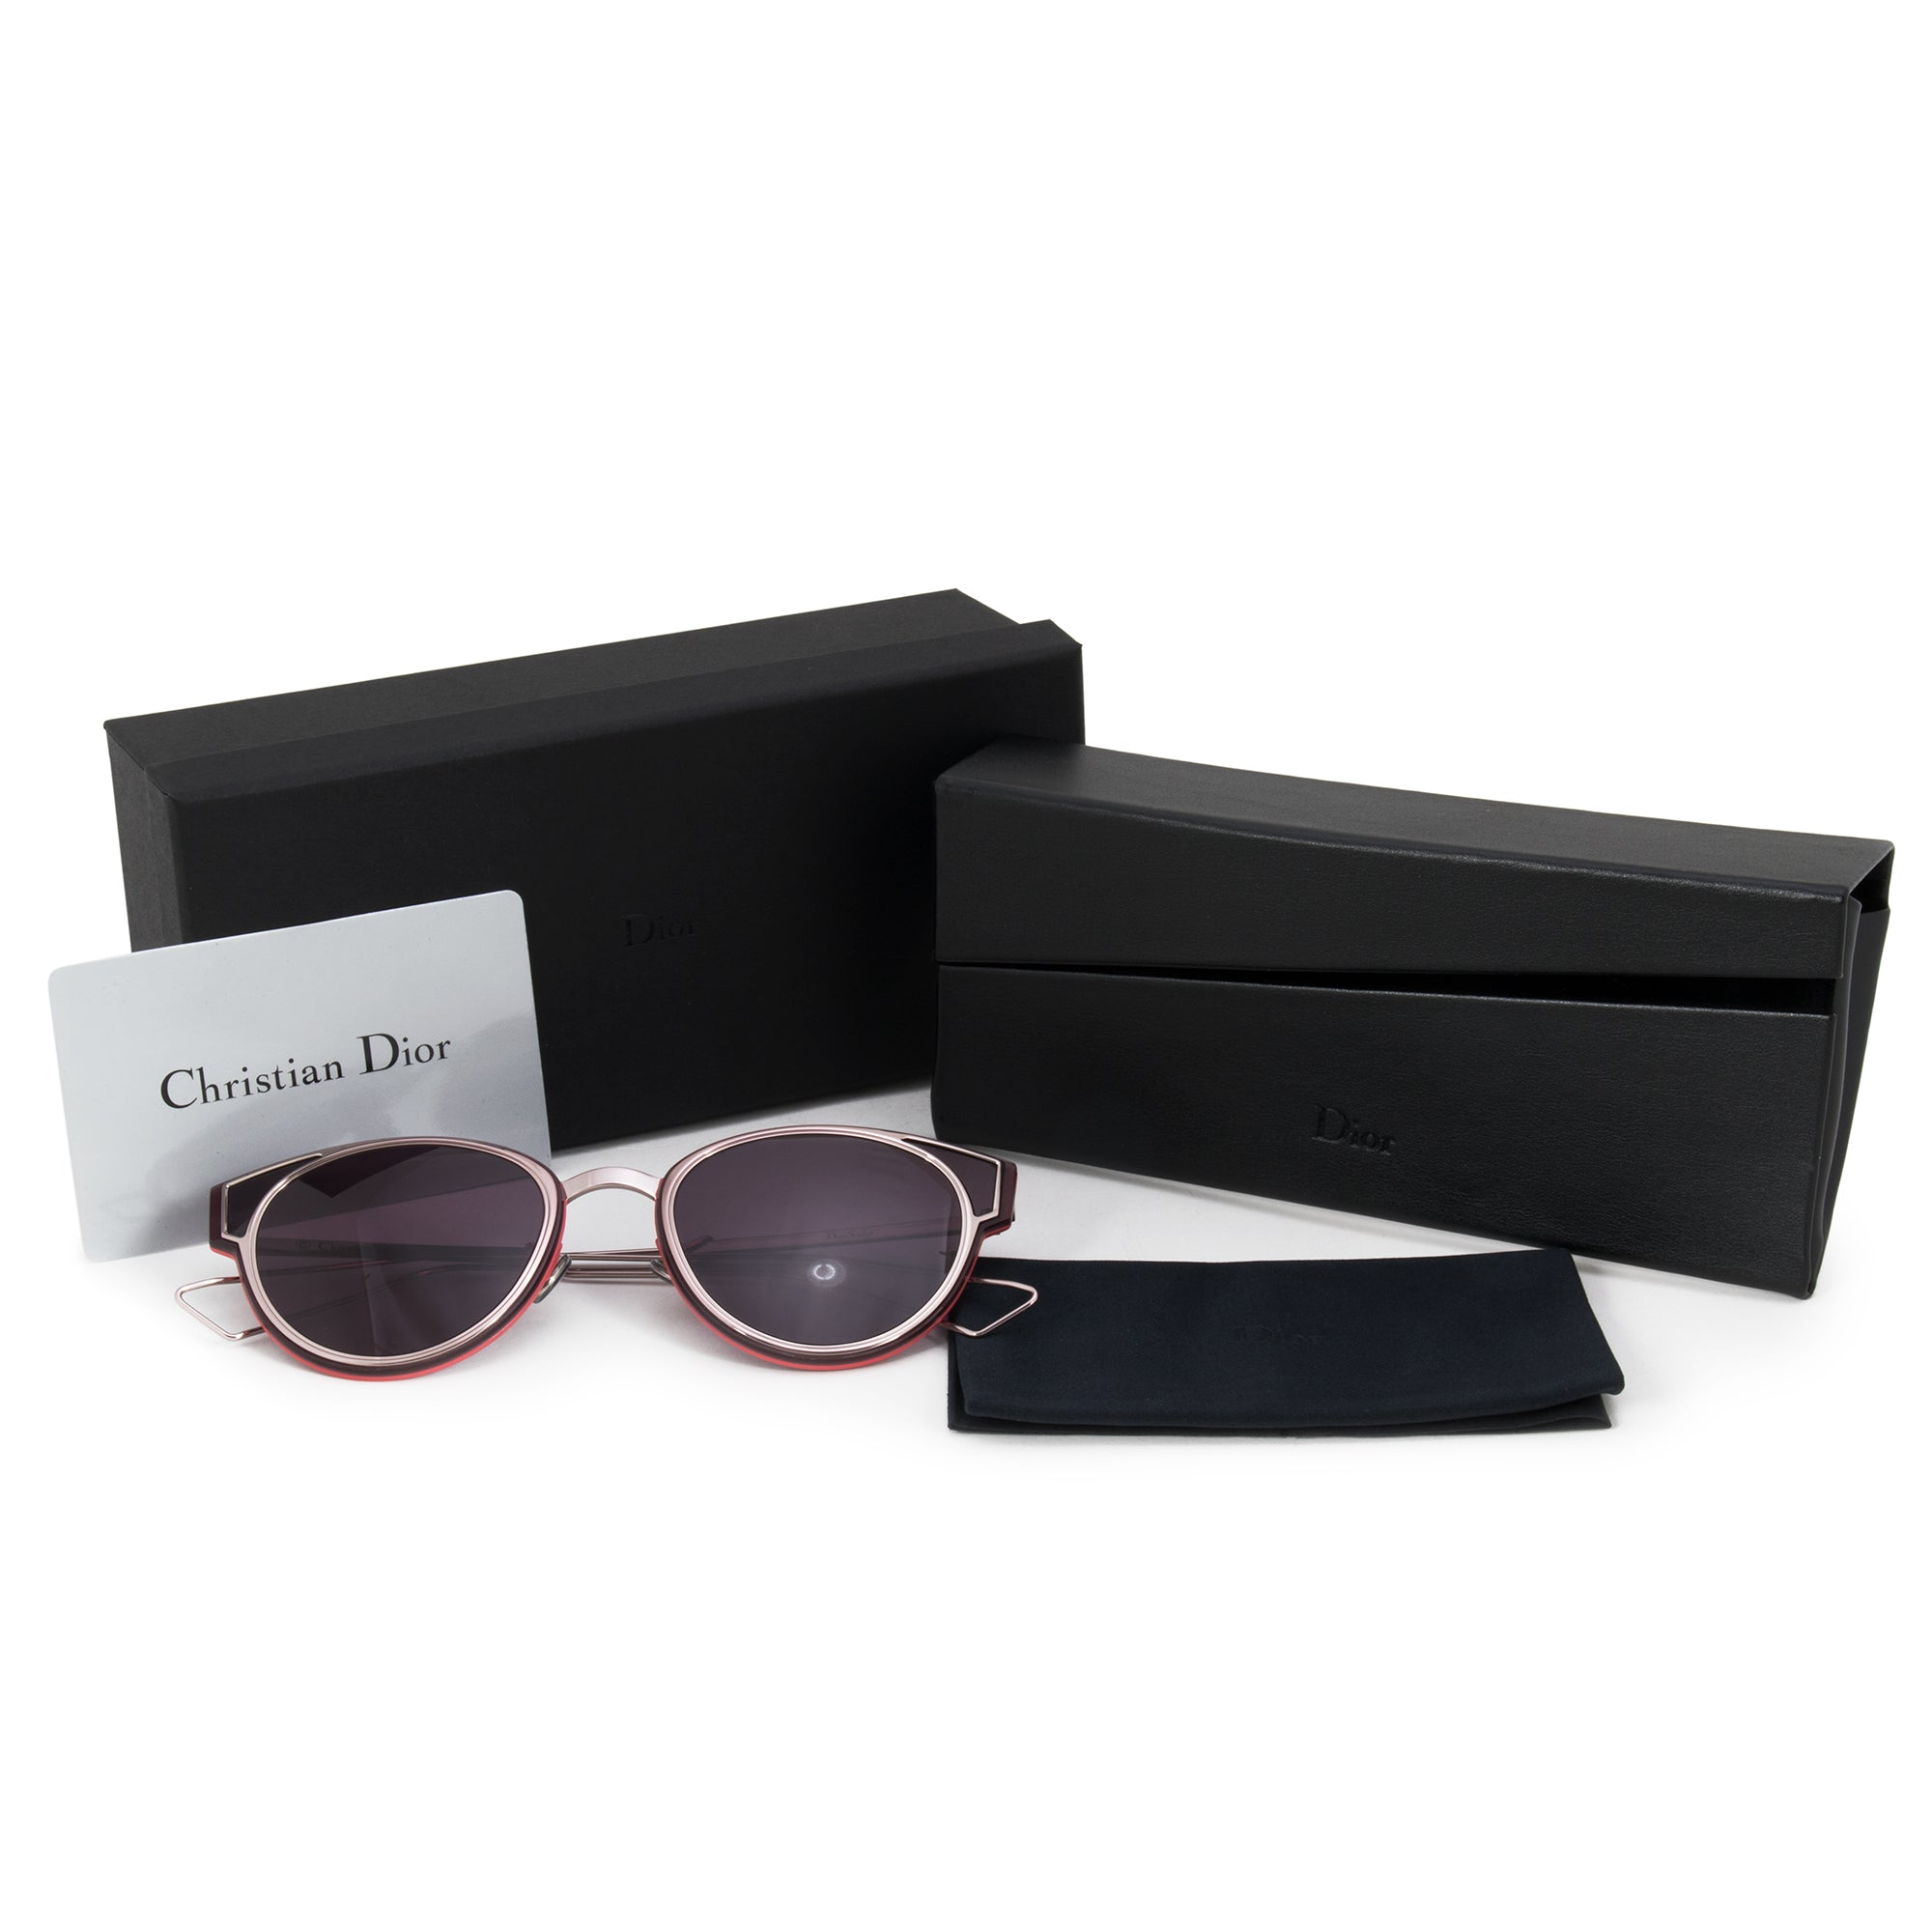 Christian Dior Sculpt Cat Eye Sunglasses R7U/C6 63